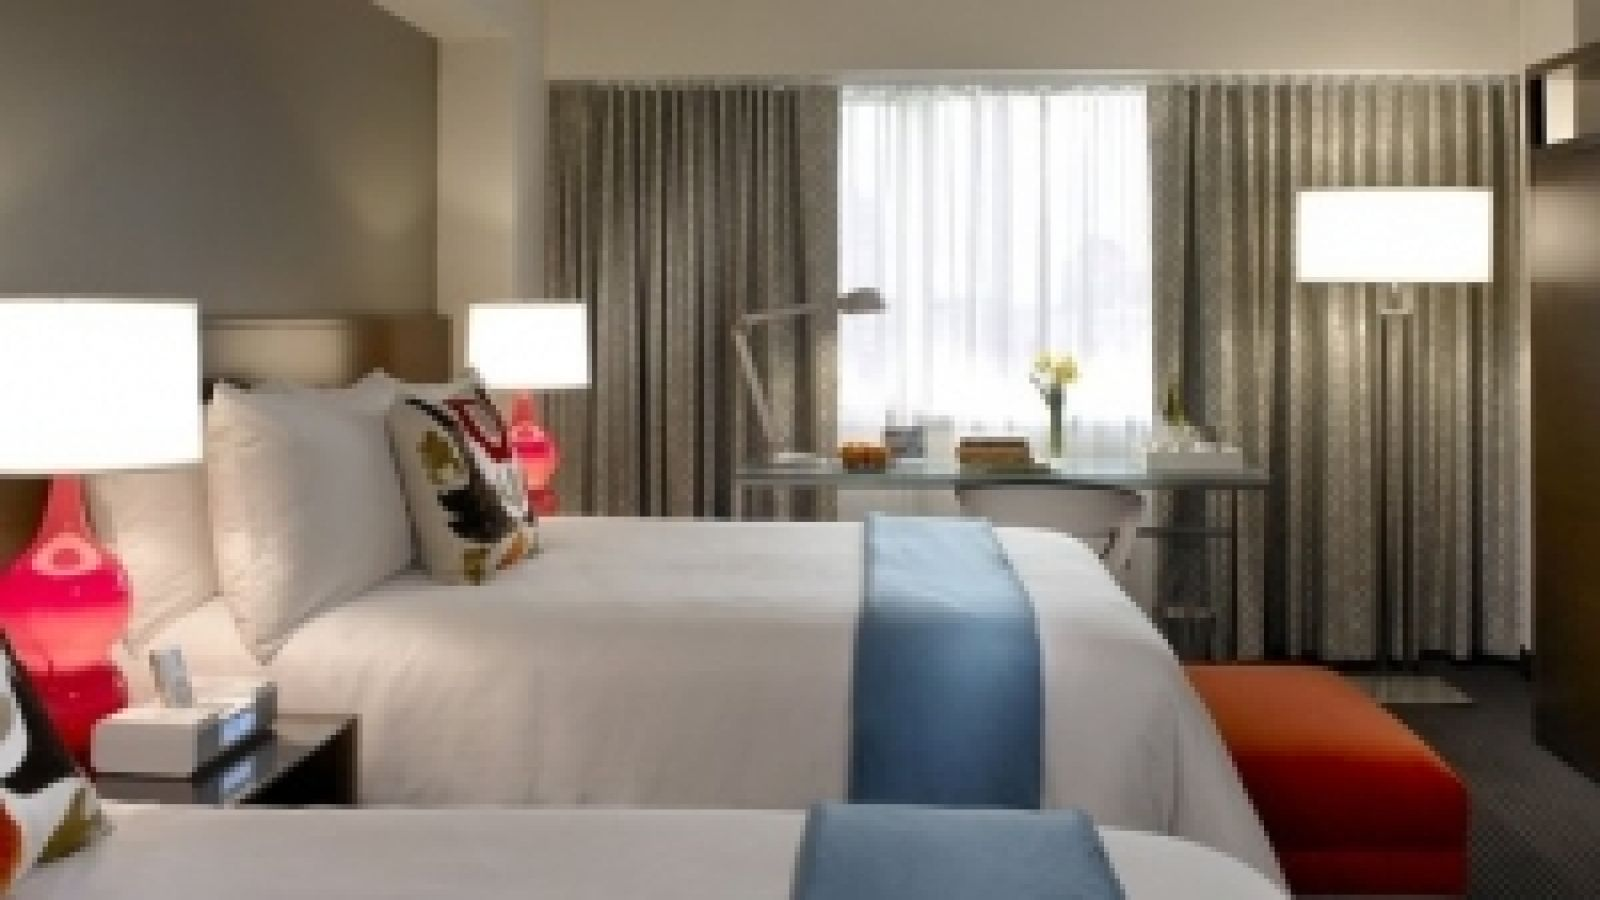 Hotel Murano Tacoma - Washington State golf packages